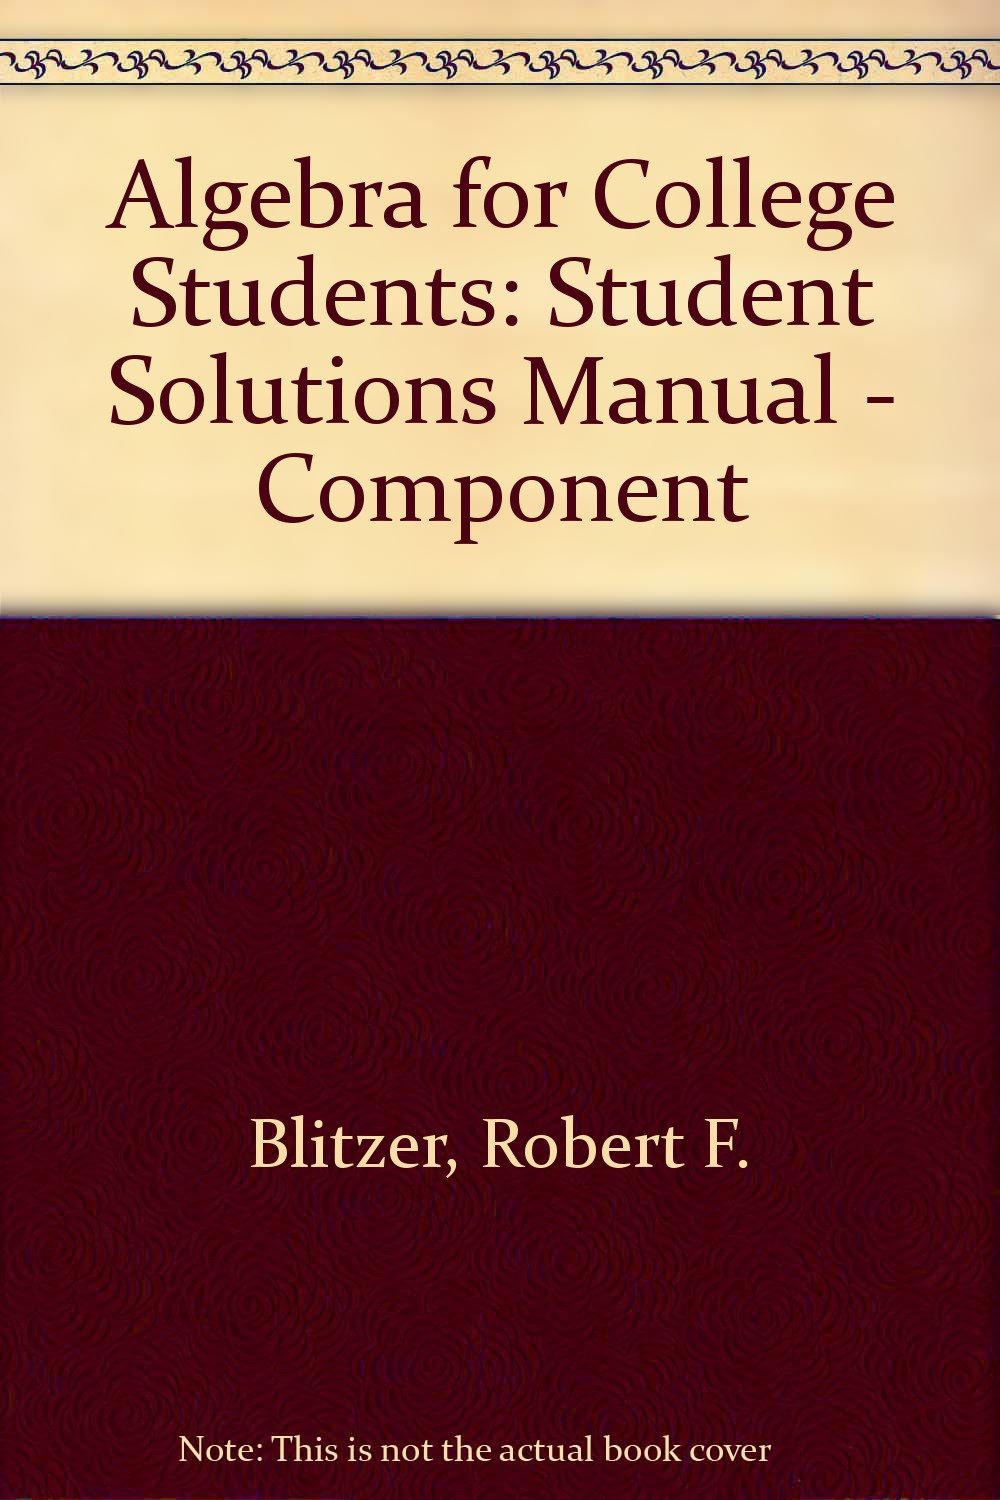 Algebra for College Students: Student Solutions Manual, 6th Edition: Robert  F. Blitzer: 9780136031413: Amazon.com: Books